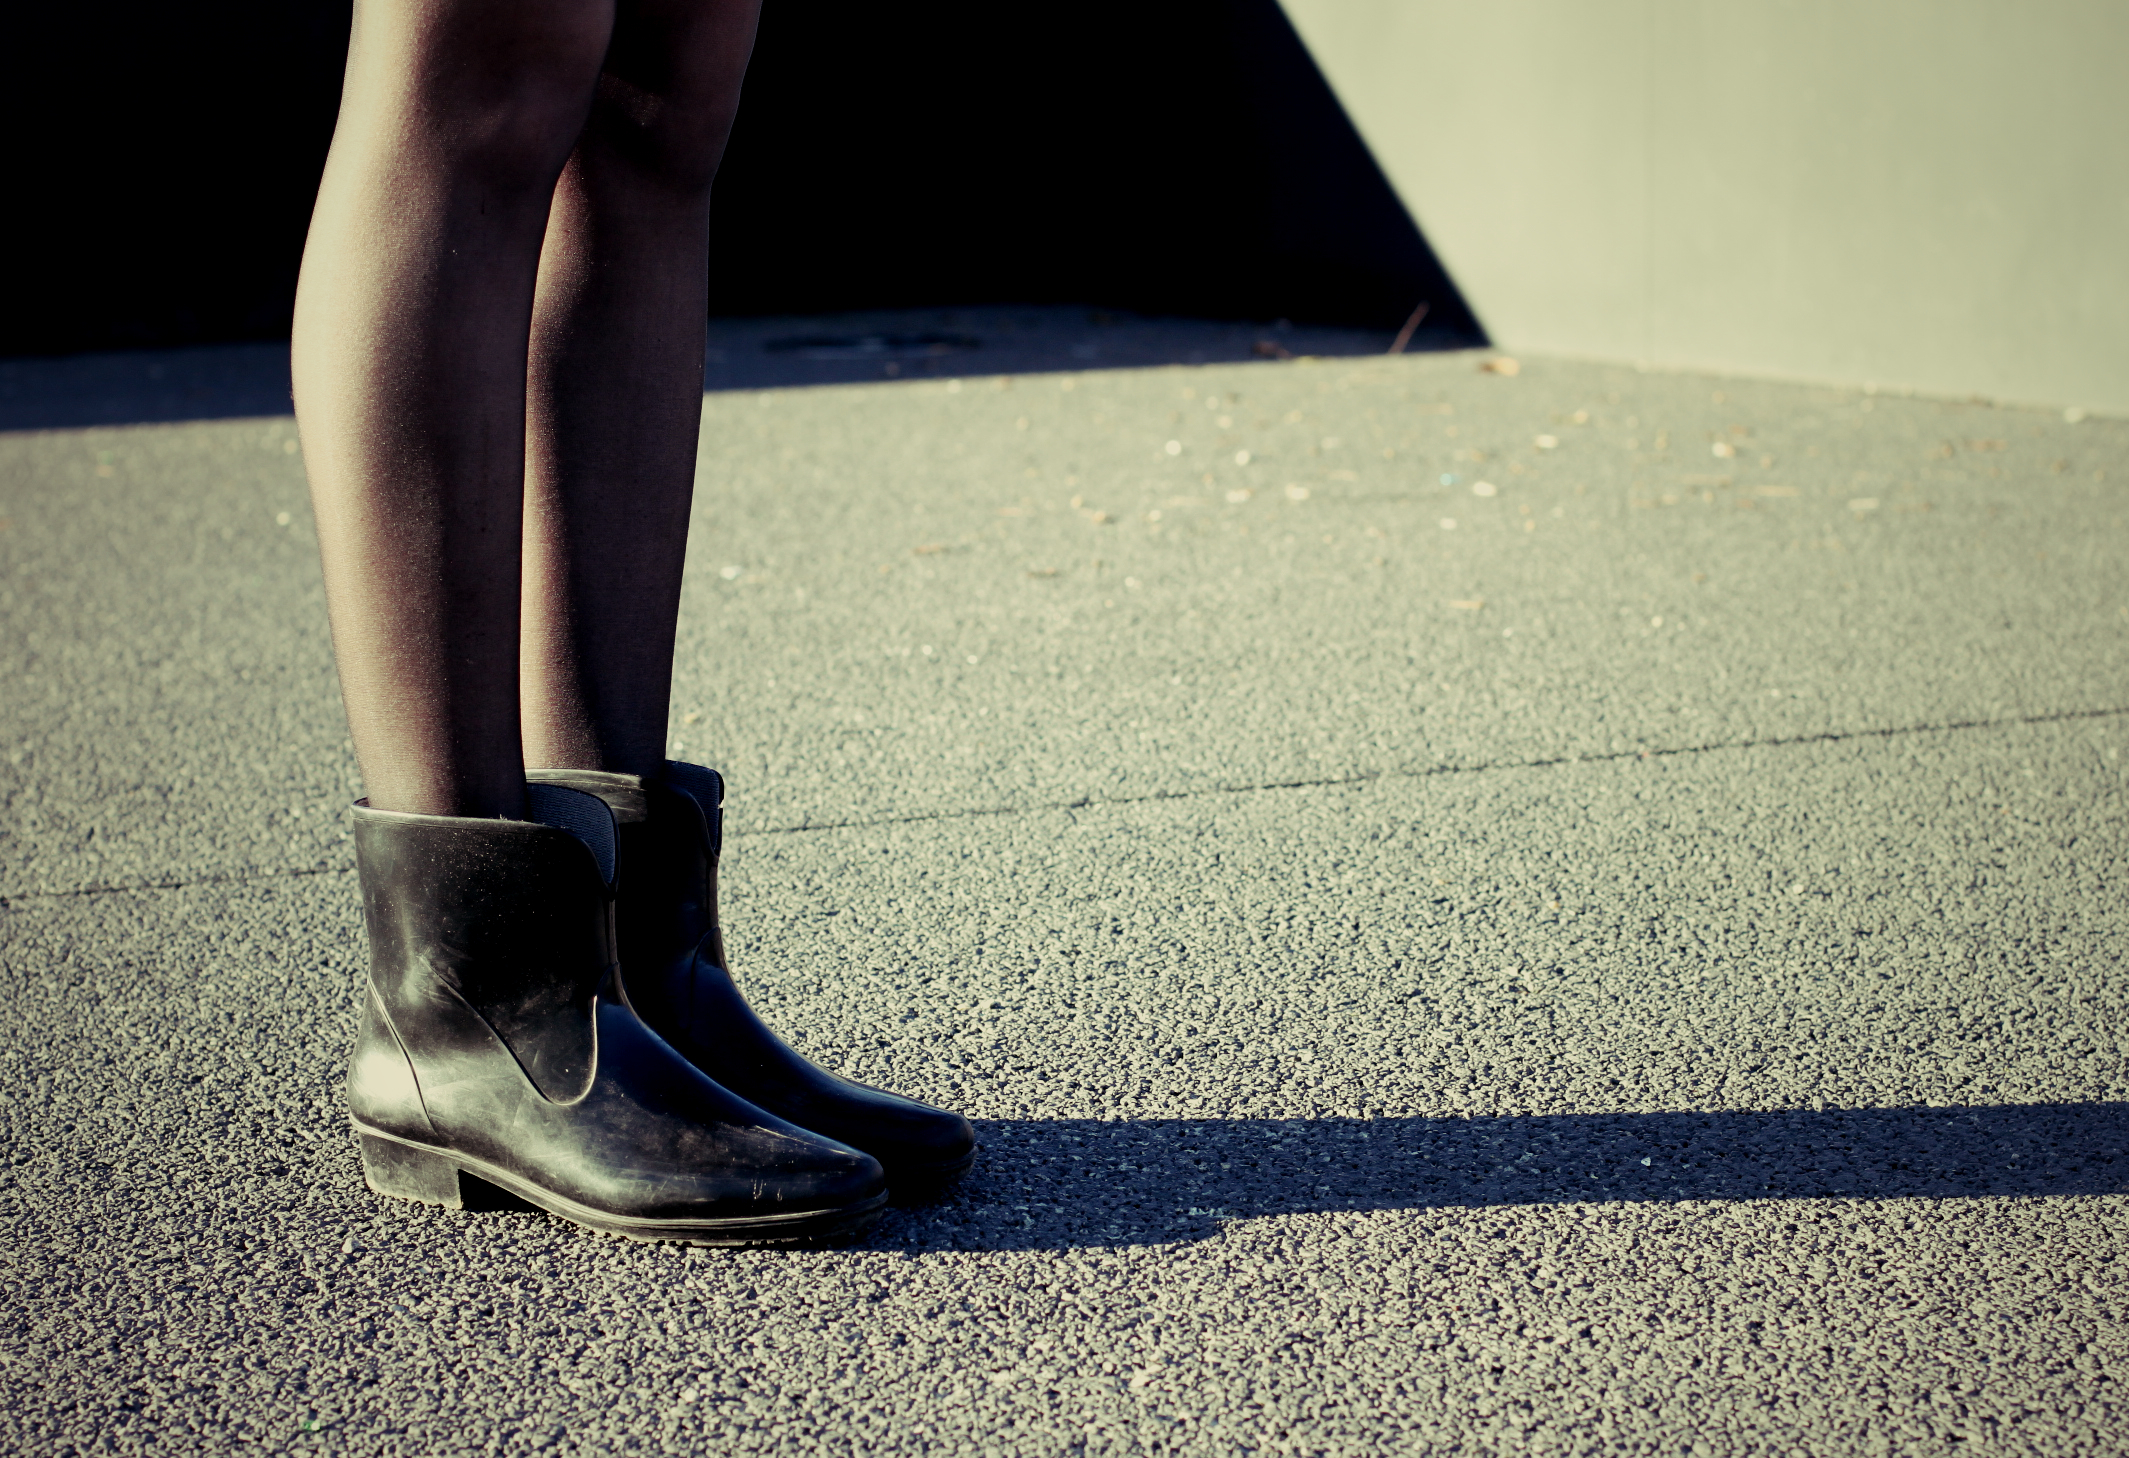 Streetstyle # 1 : Charlotte, 18 ans, Poitiers